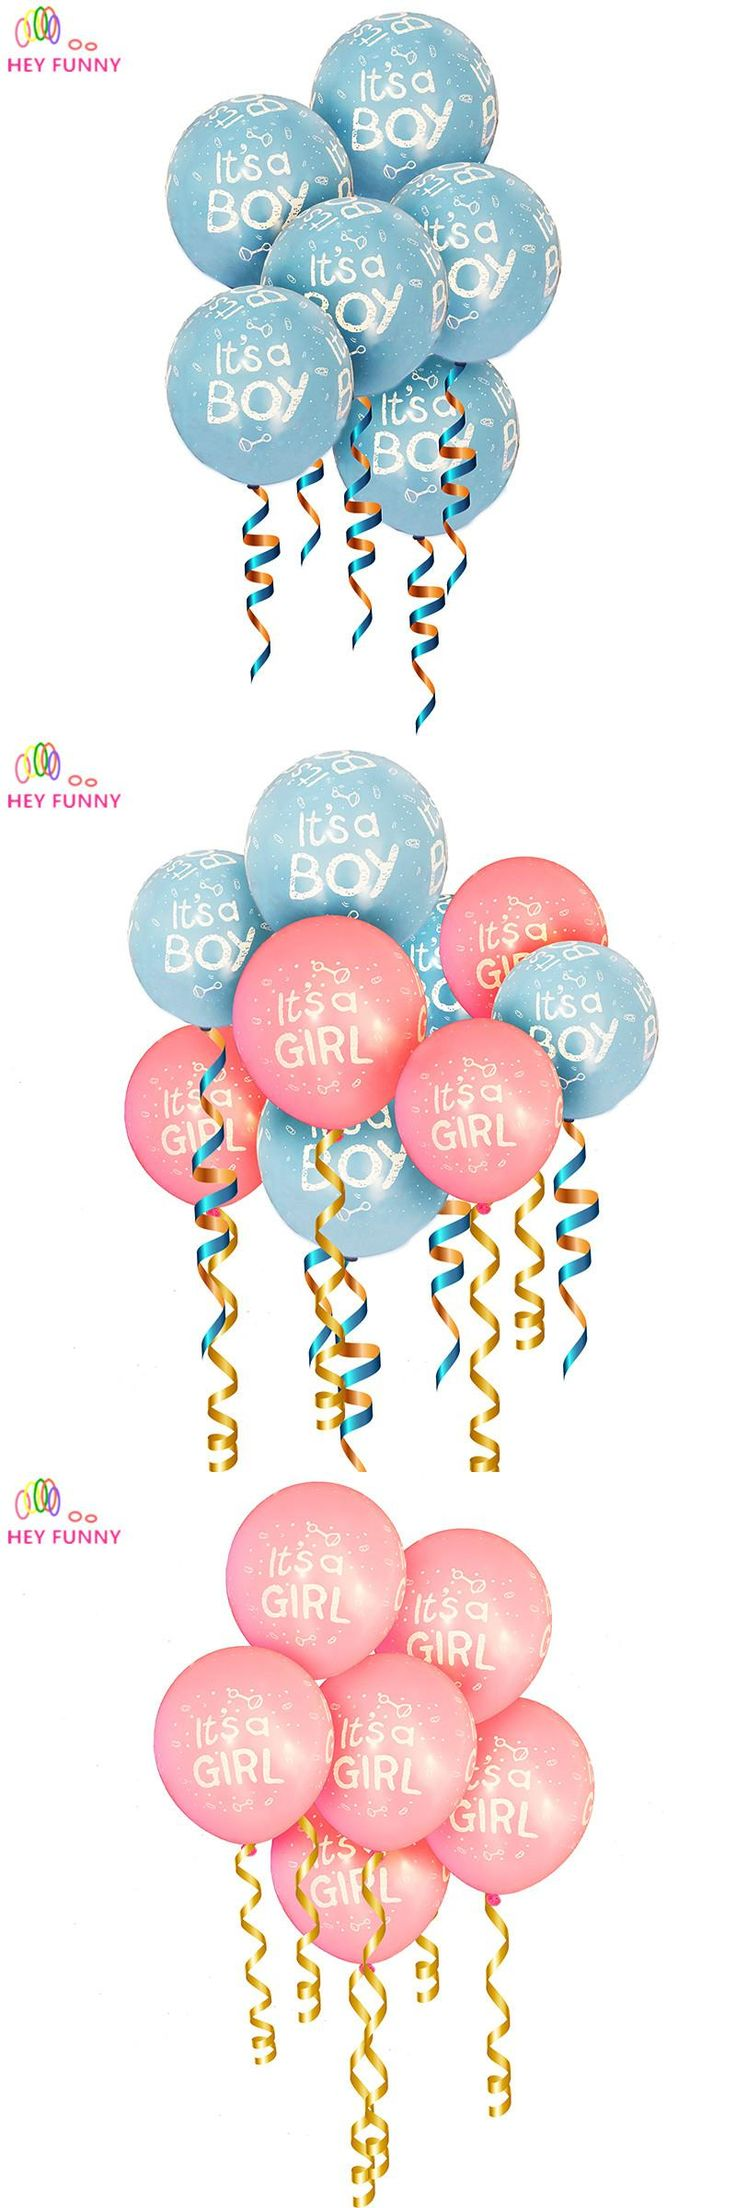 HEY FUNNY 20 Pcs It is a boy and it's a girl baby boy latex balloons for kids Birthday Baby shower Party Decor Blue Pink Colors